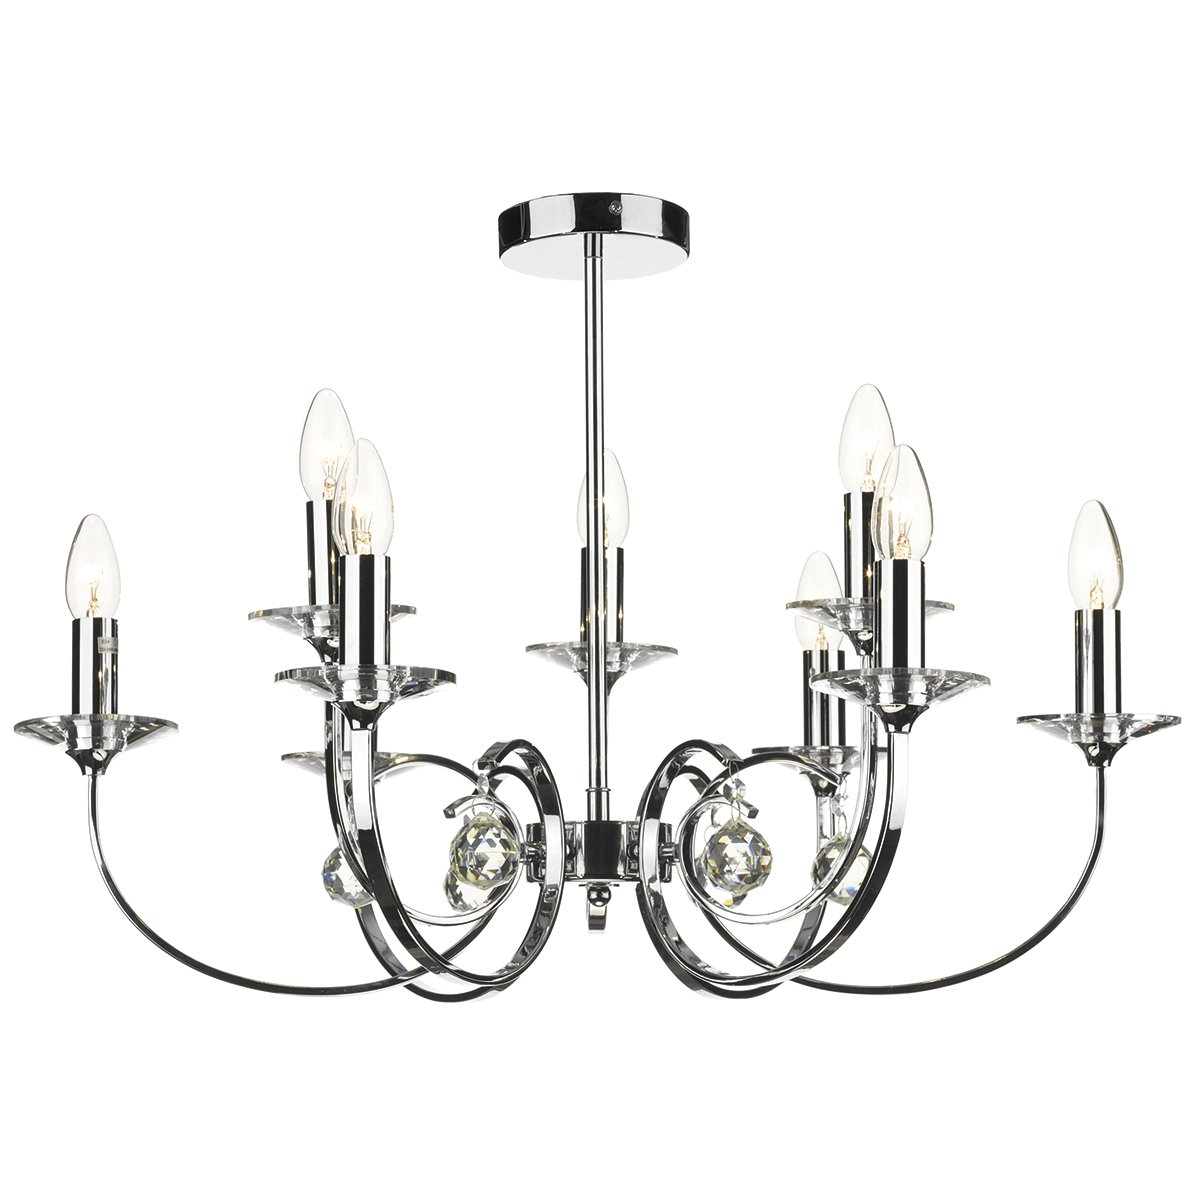 dar allegra 9 light dual mount pendant polished chrome at barnitts online store  uk